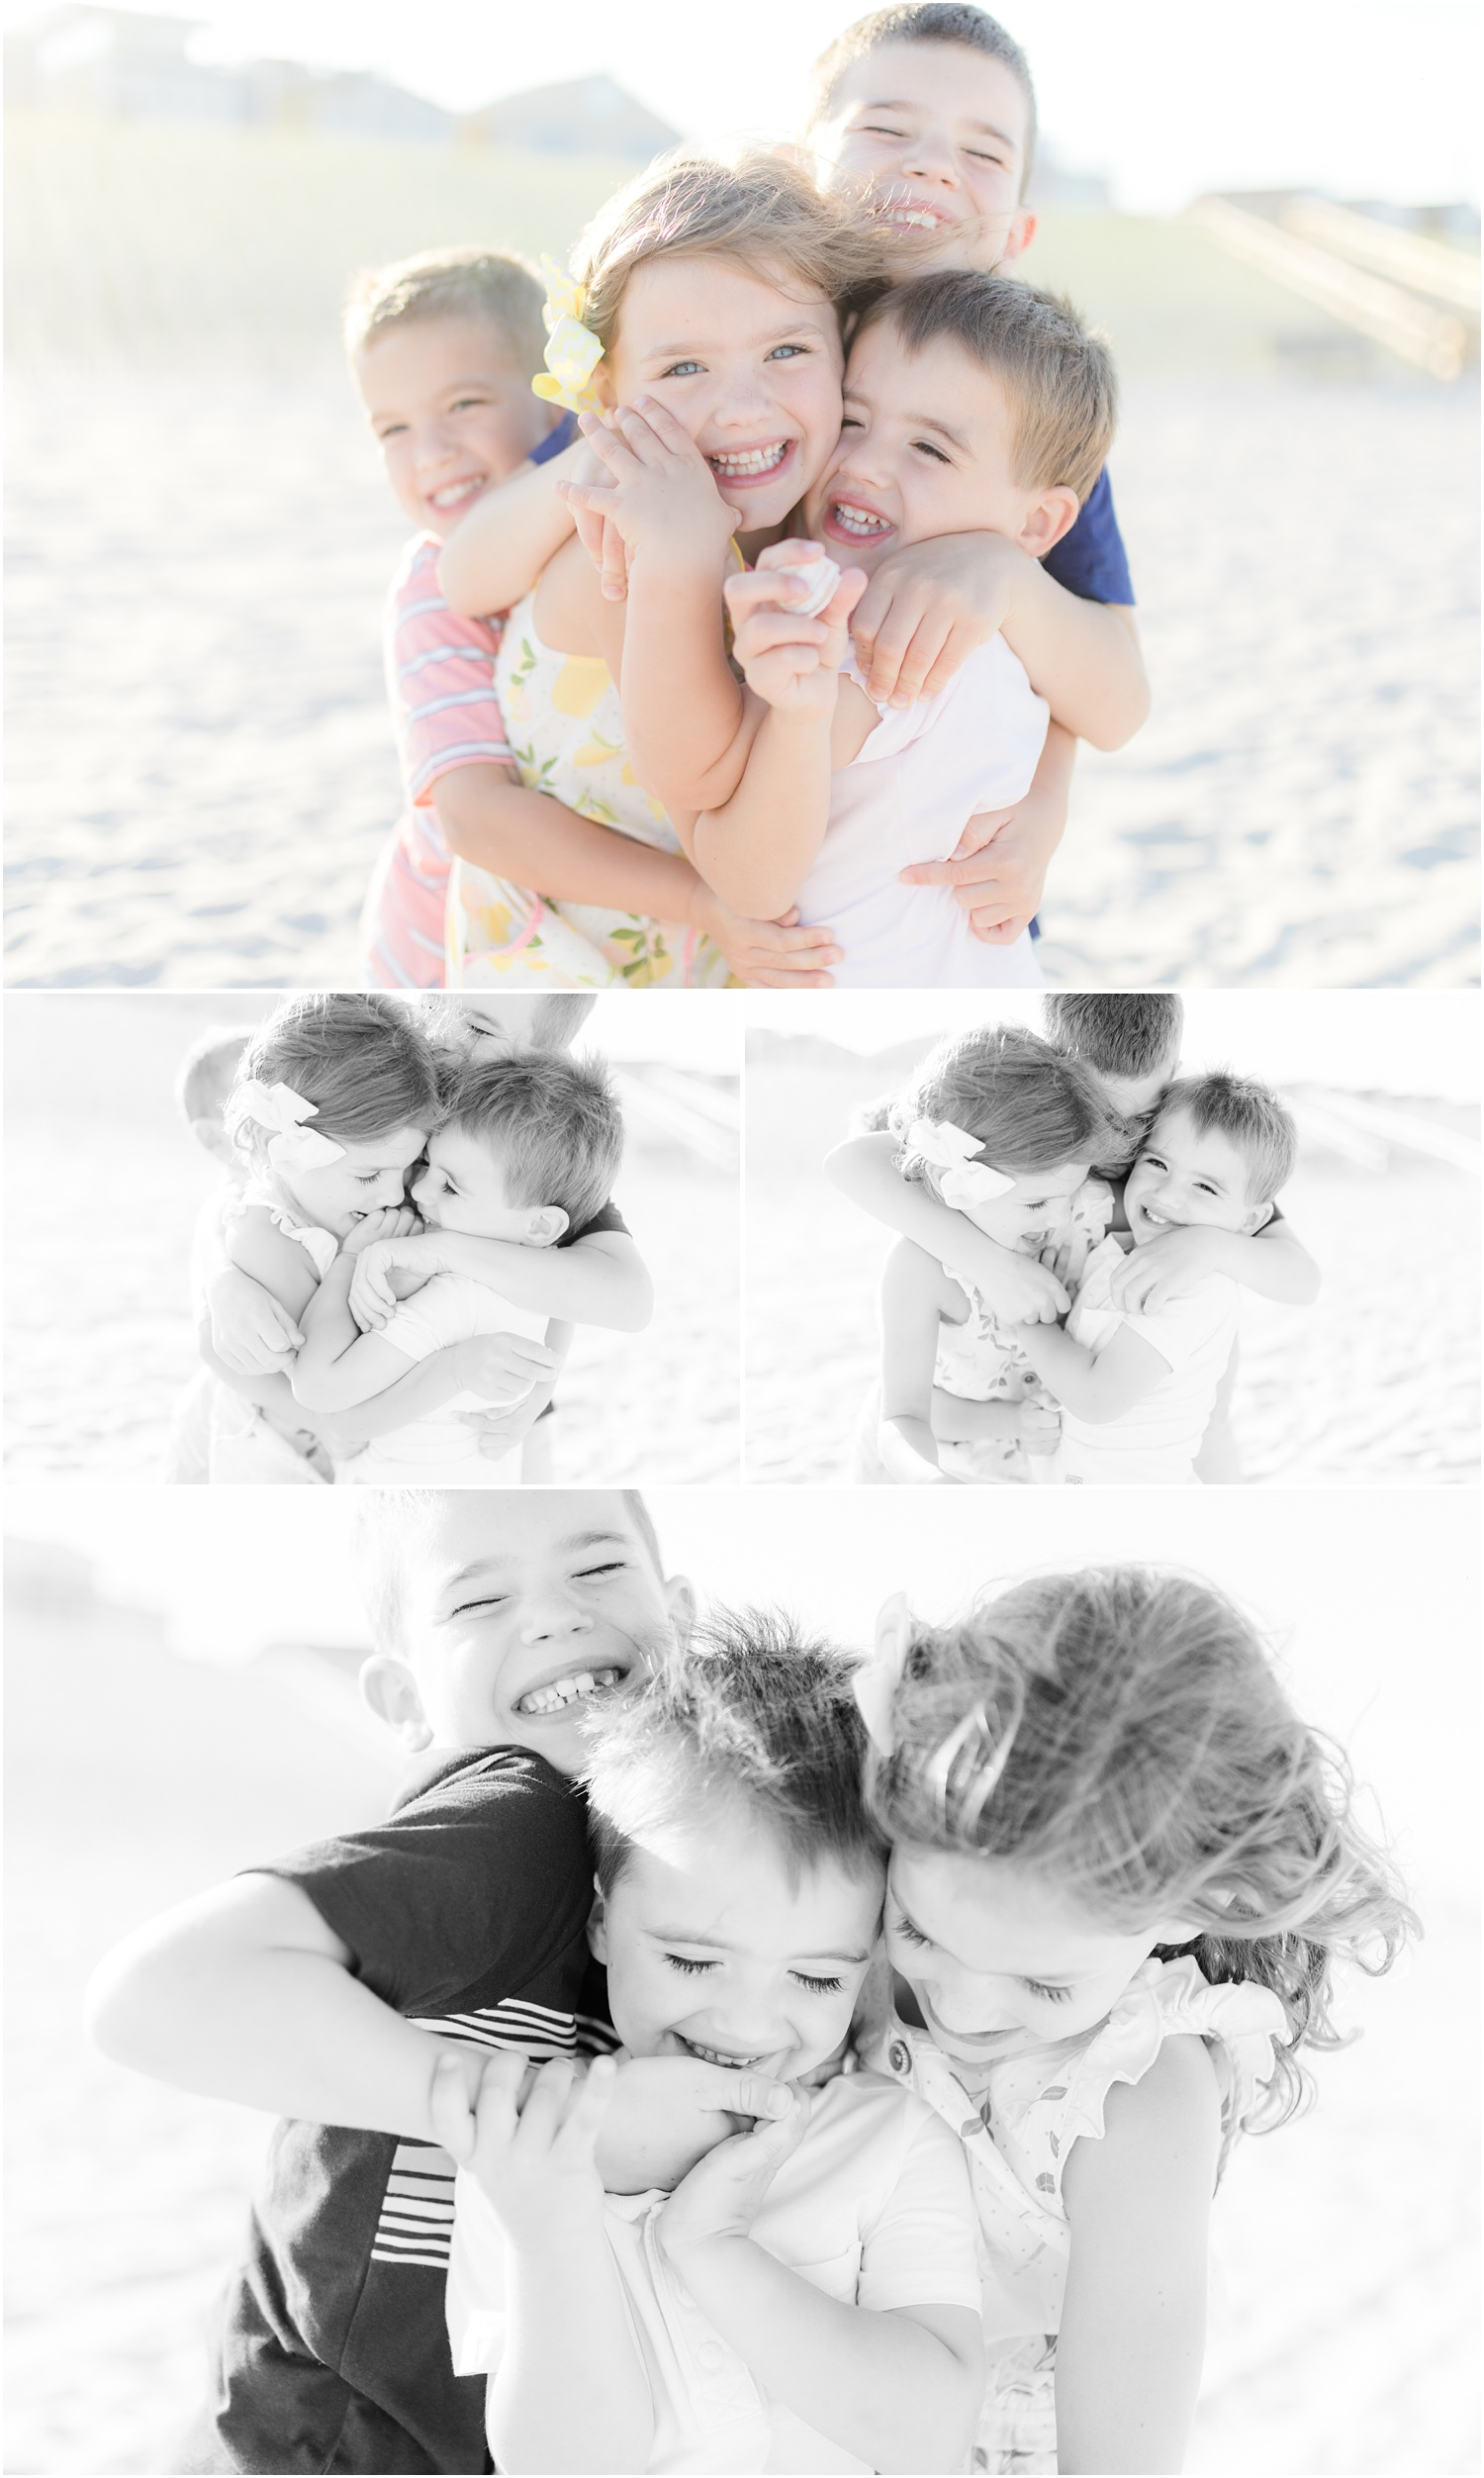 fun intimate candid moments with 5 kids at the beach in Lavallette, NJ.